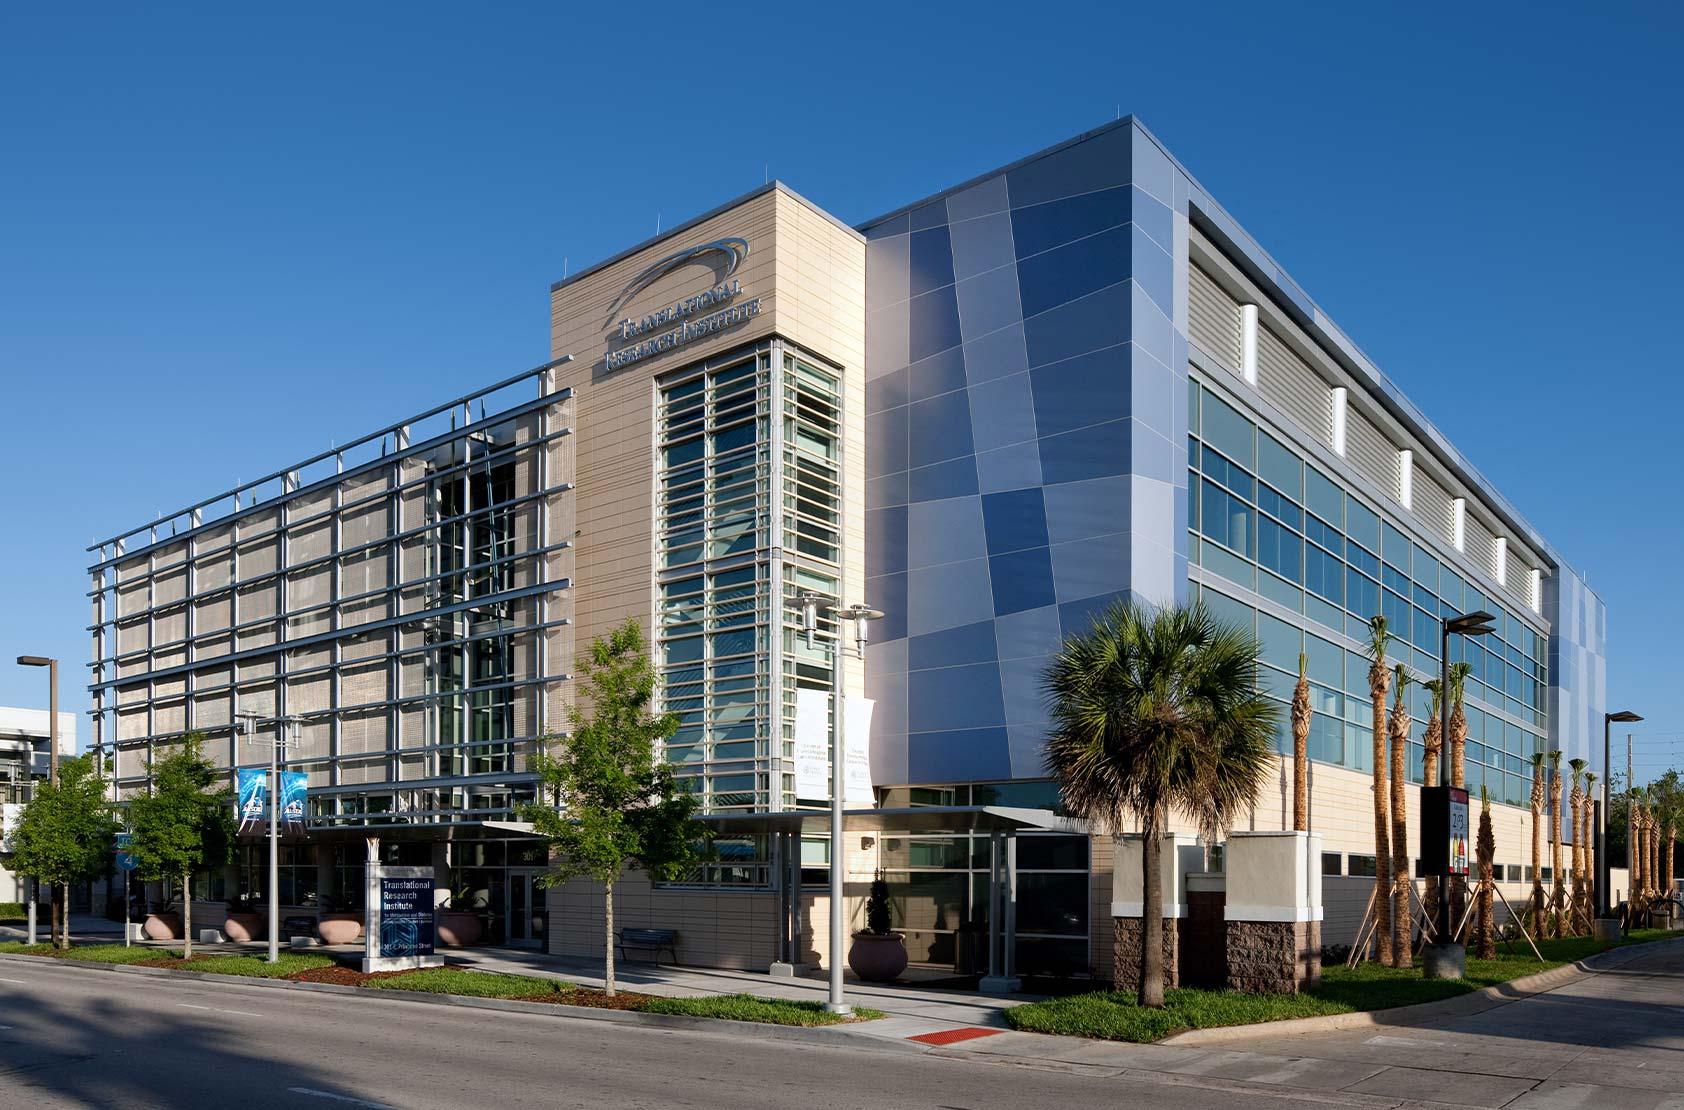 Florida Hospital / Sanford-Burnham Institute - Translational Research Institute